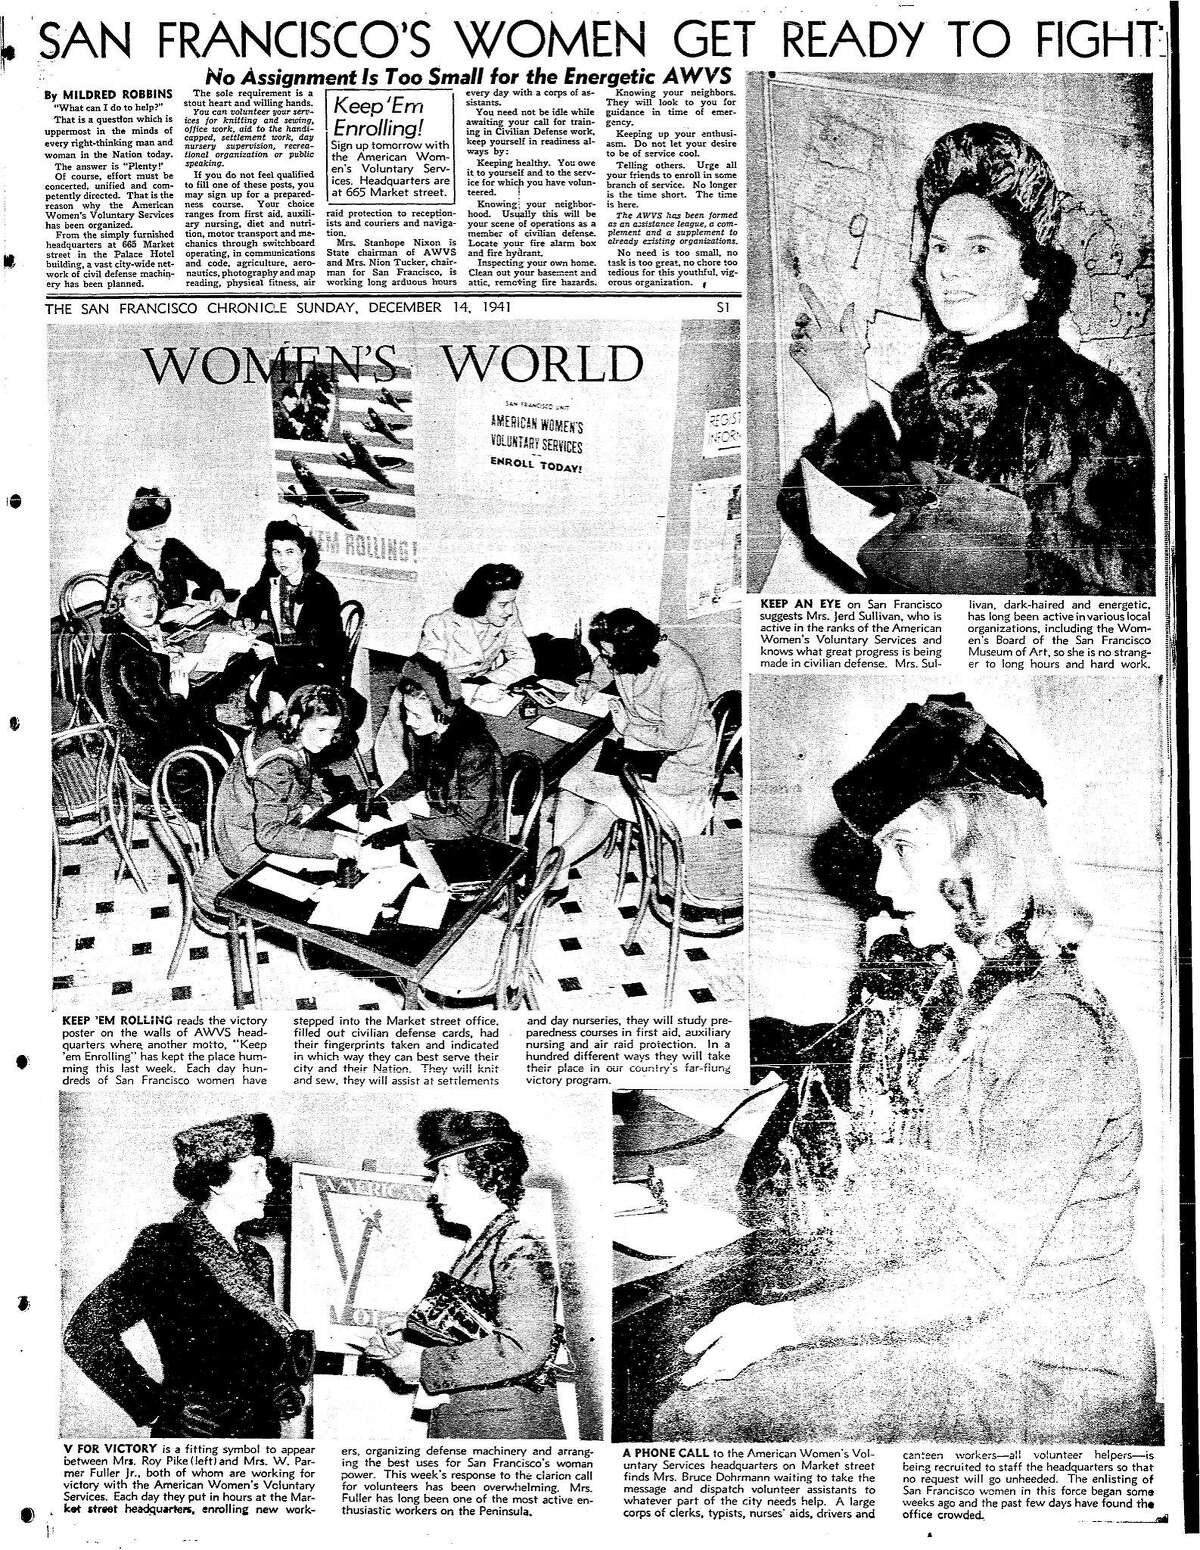 A December 14, 1941 Chronicle article on various women's organizations including the AWVS, American Women's Volunteer Services, preparing for war in the days after the Pearl Harbor attack